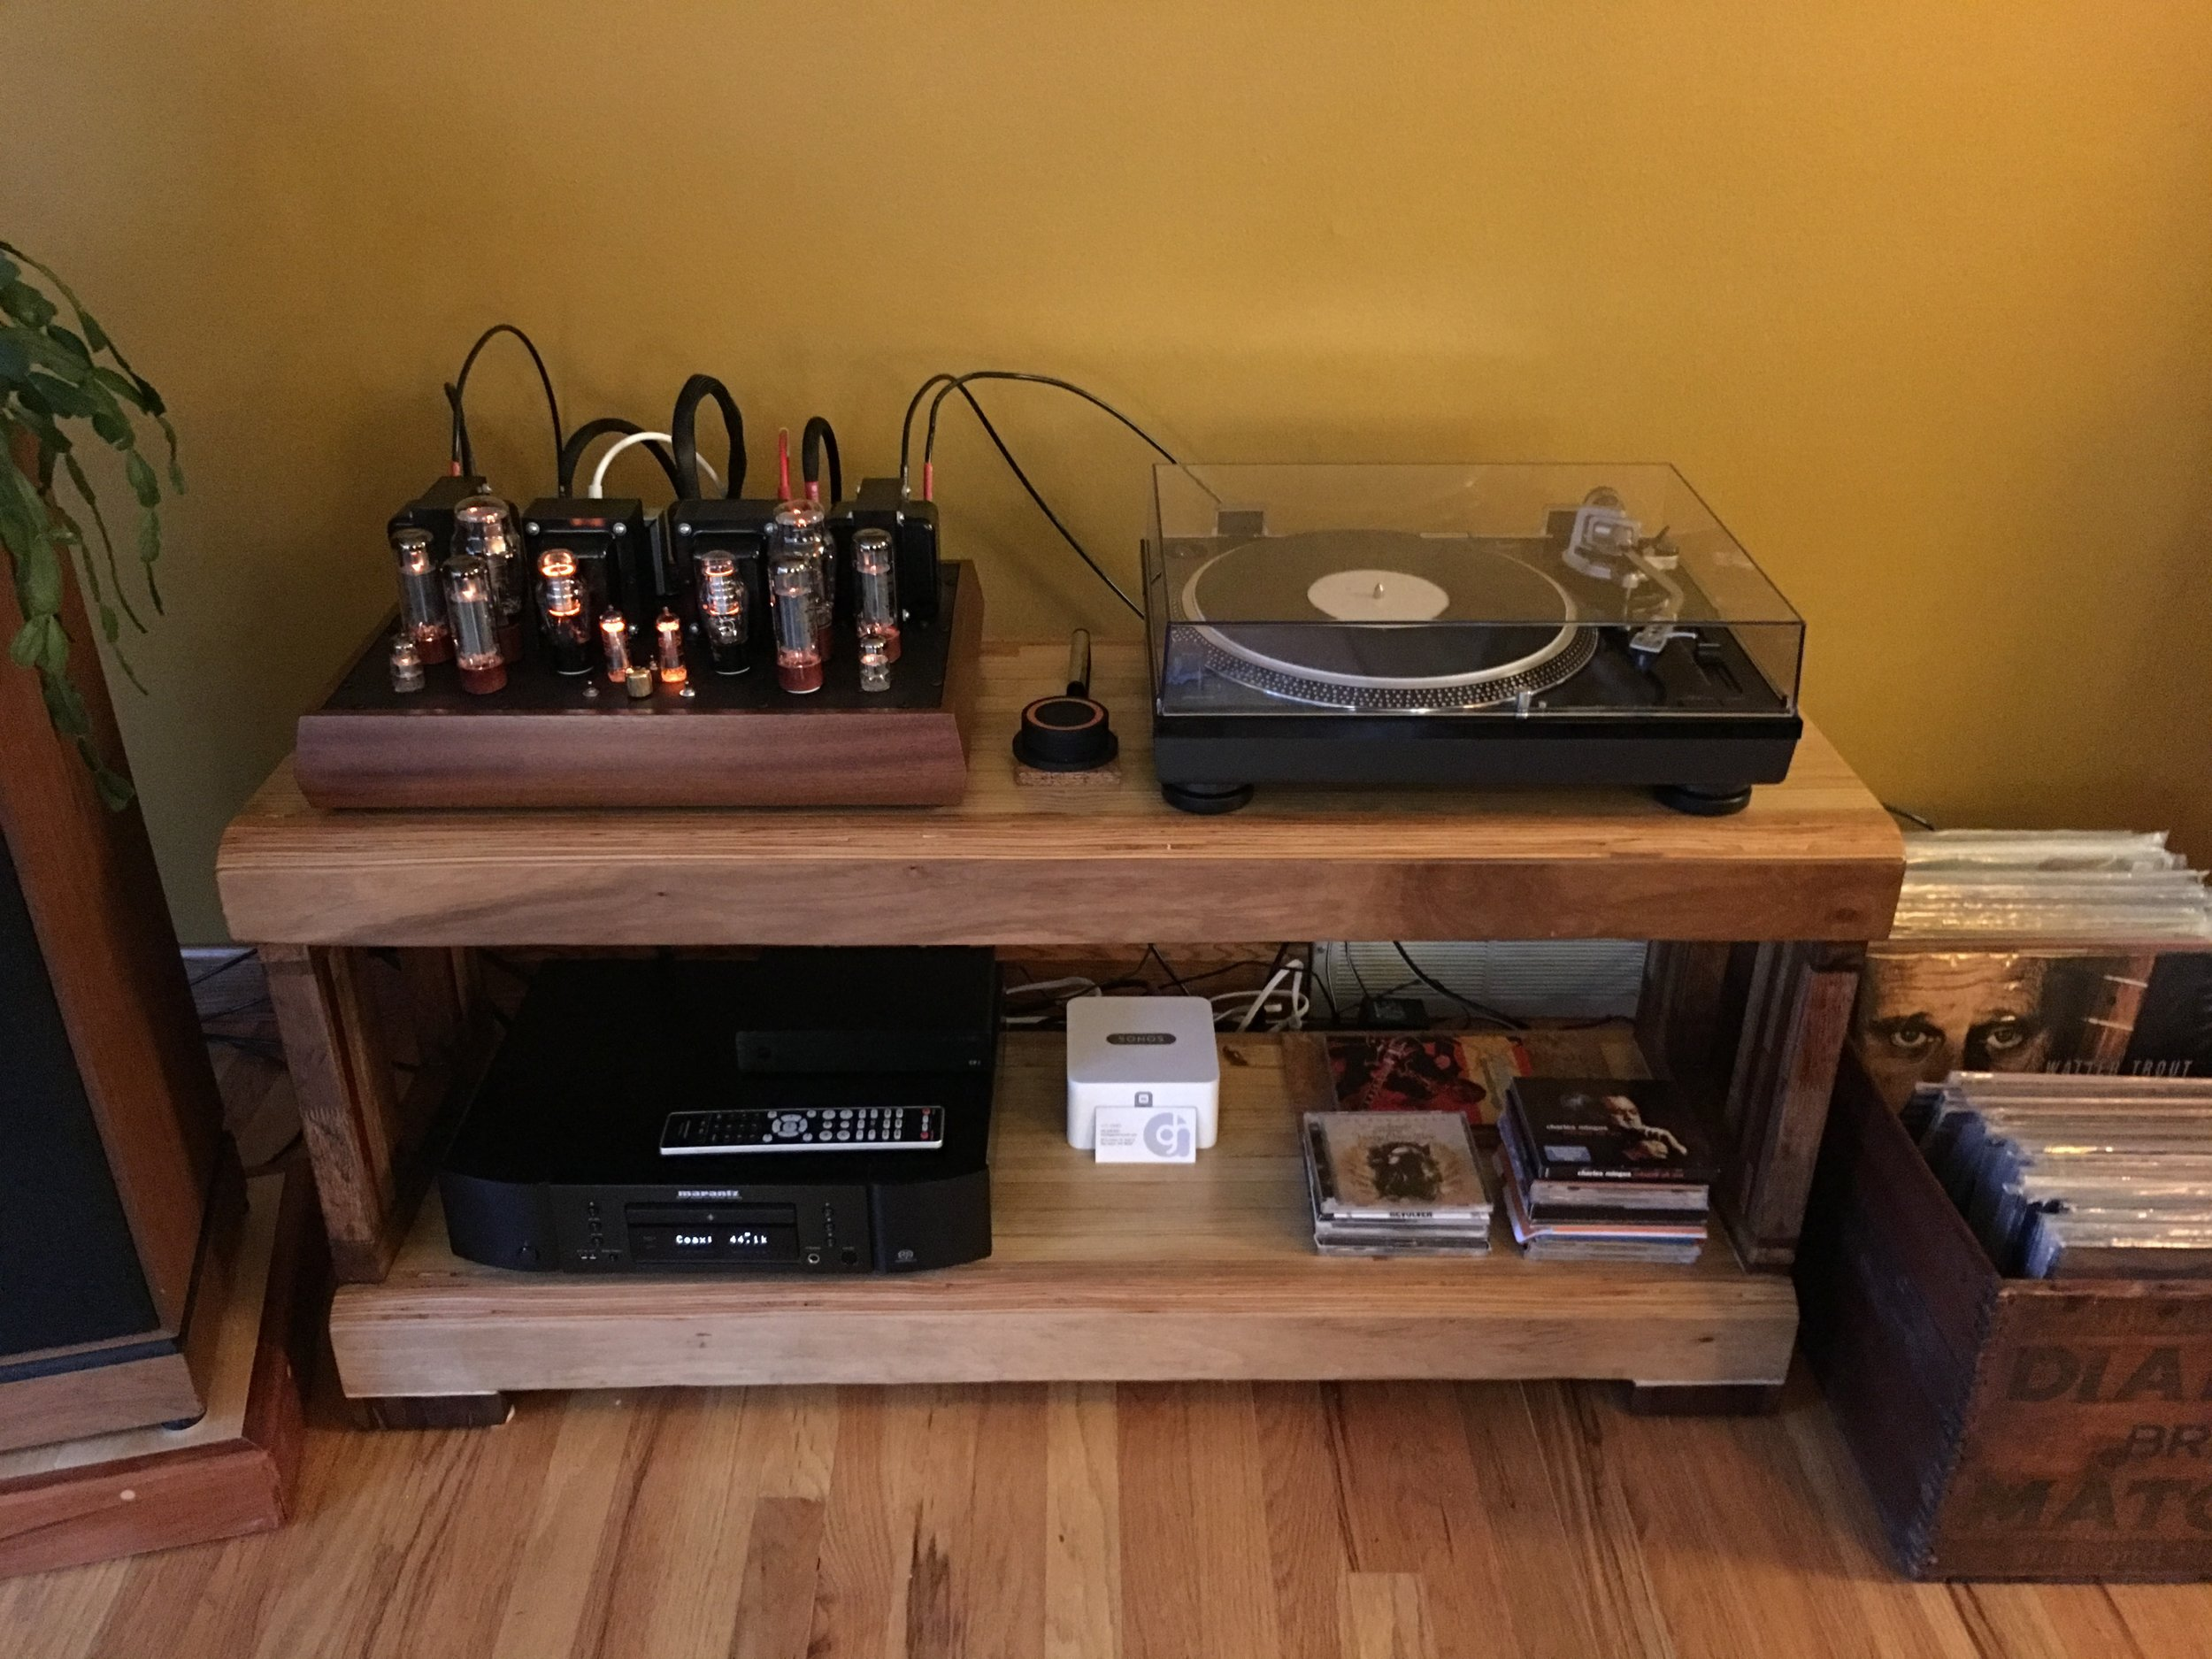 Eric system: Decware Torii MKIV (25 wpc. EL34 tubes), AT 120/Ortofon Blue, Marantz CD, SonosConnect, Klipsch speakers, custom GHA wood table! Wow, that is a nice amp.